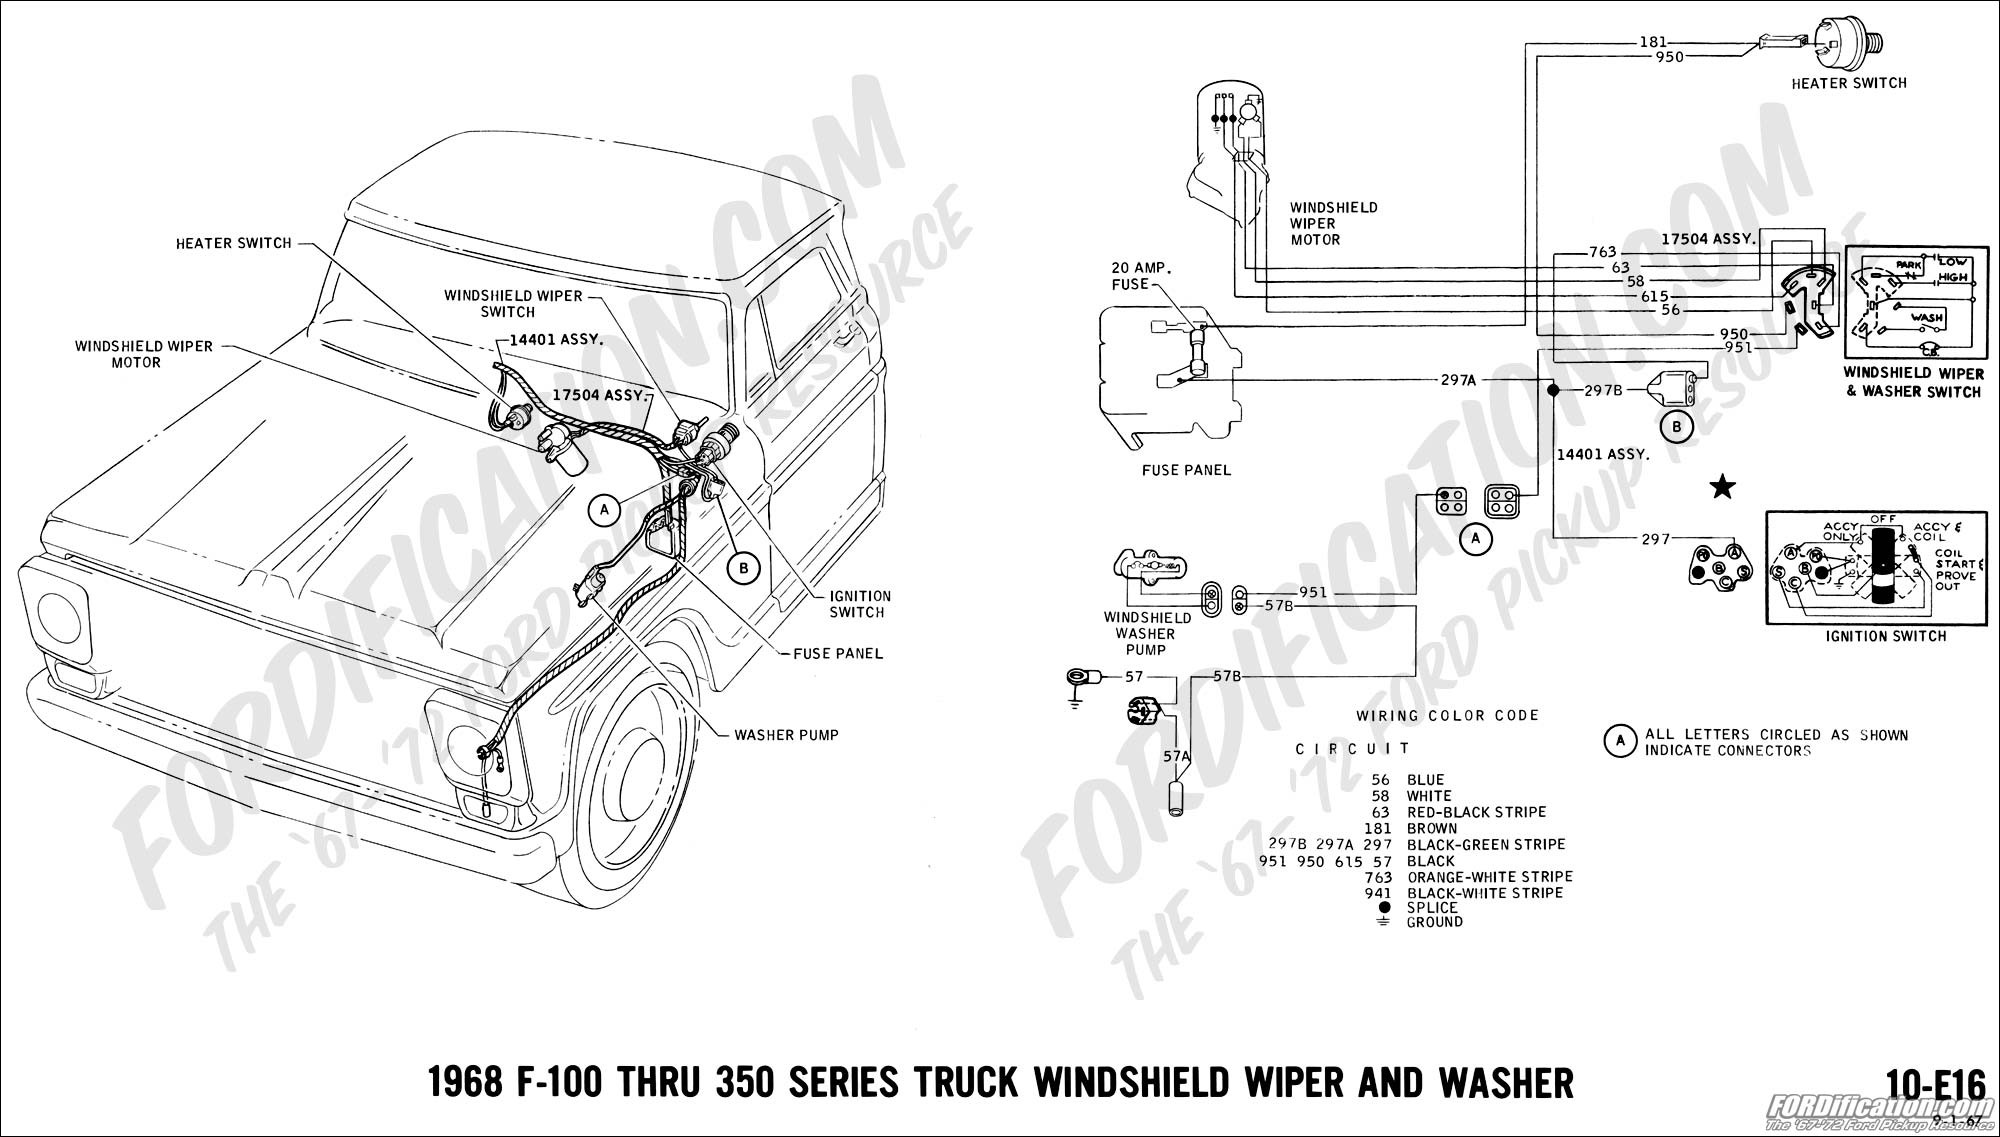 Ford 302 Engine Diagram ford Truck Technical Drawings and Schematics  Section H Wiring Of Ford 302